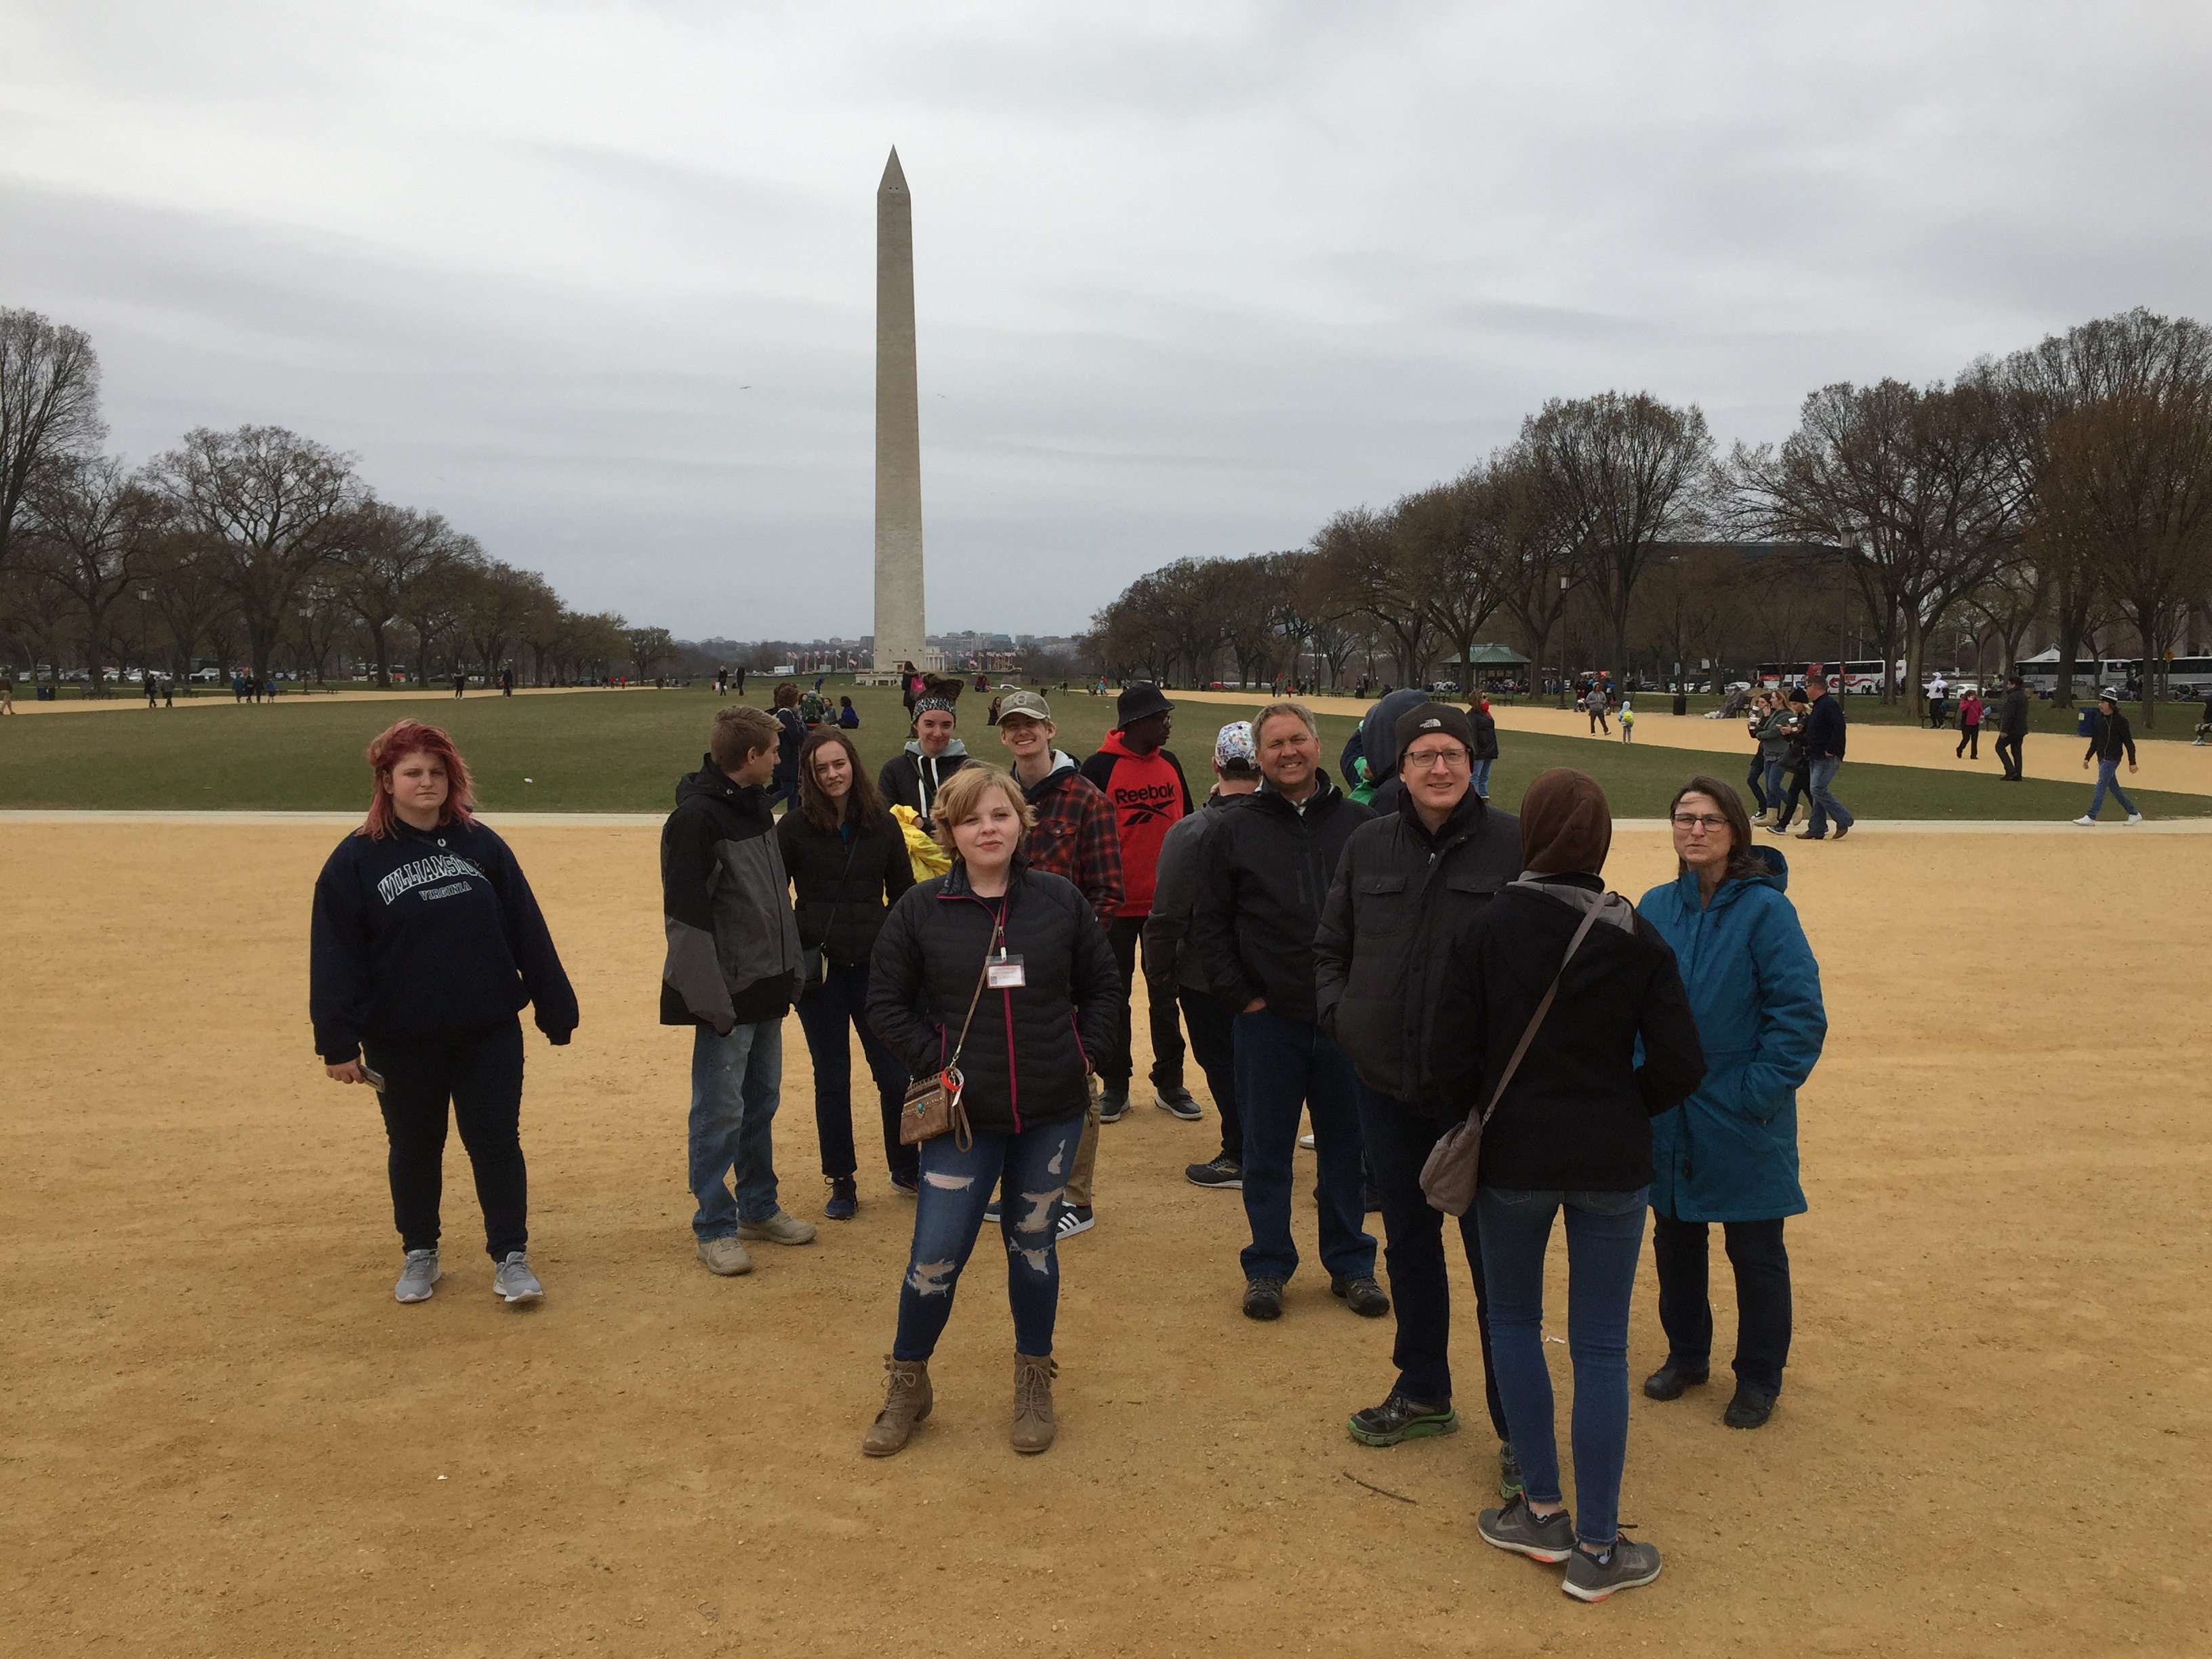 Students at National Mall in Washington, D.C.